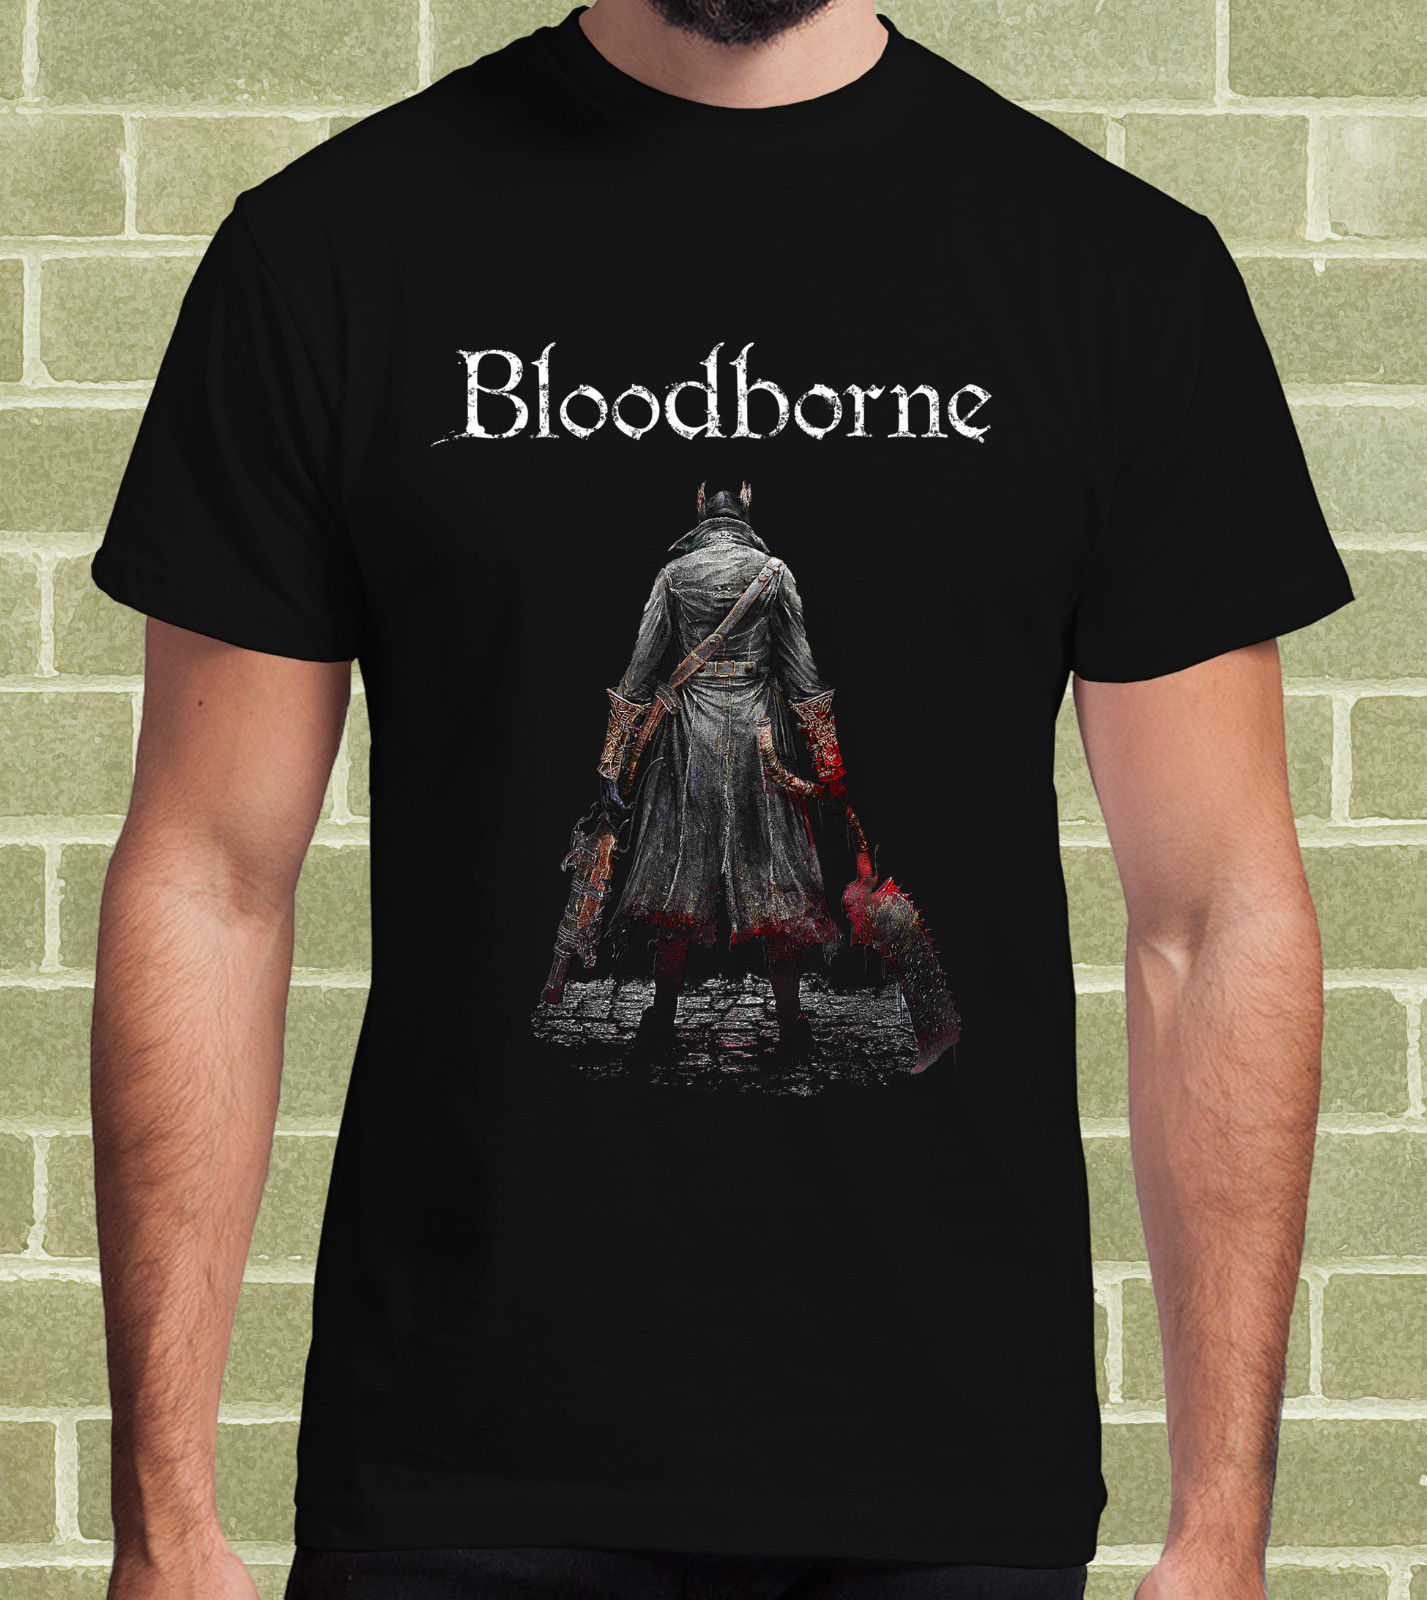 BLOODBORNE VIDEOGAME T-SHIRT per Uomo e Bambino Round Neck Teenage Pop Top Tee Printed T Shirt Men Cotton T-Shirt New Style